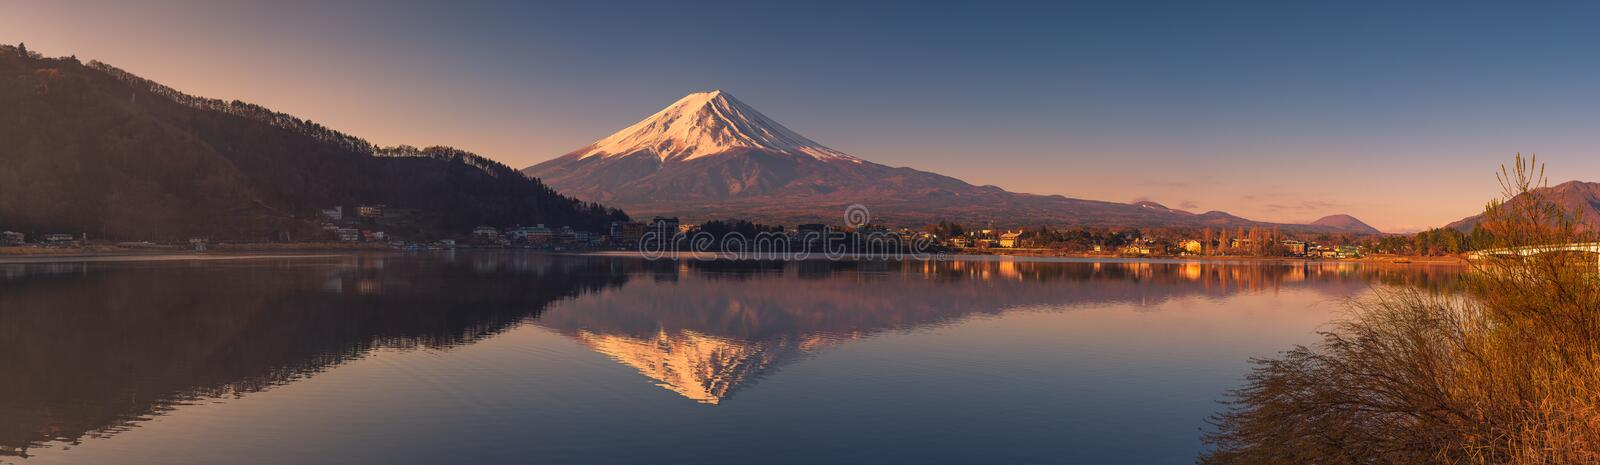 Panoramic View of Mount Fuji at Lake Kawaguchi stock images